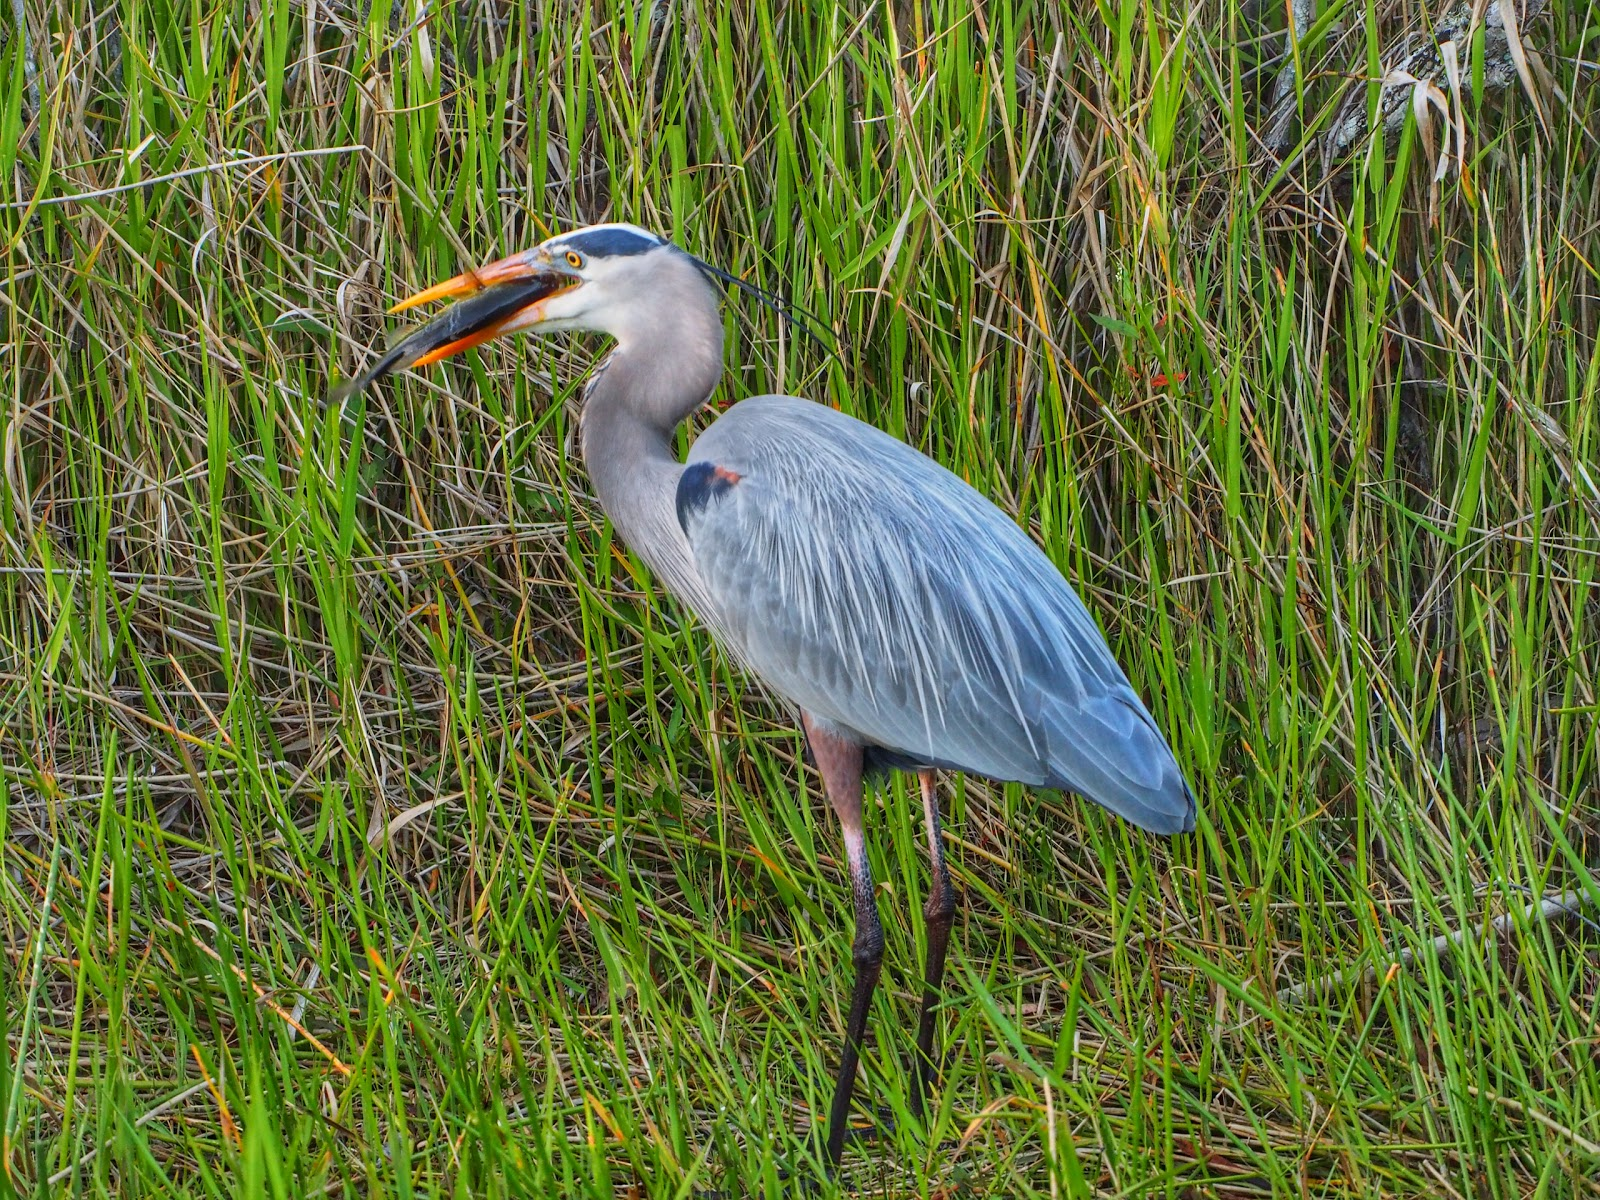 Swallowing #Swallowing #heron #everglades #florida ©2014 Nancy Lundebjerg